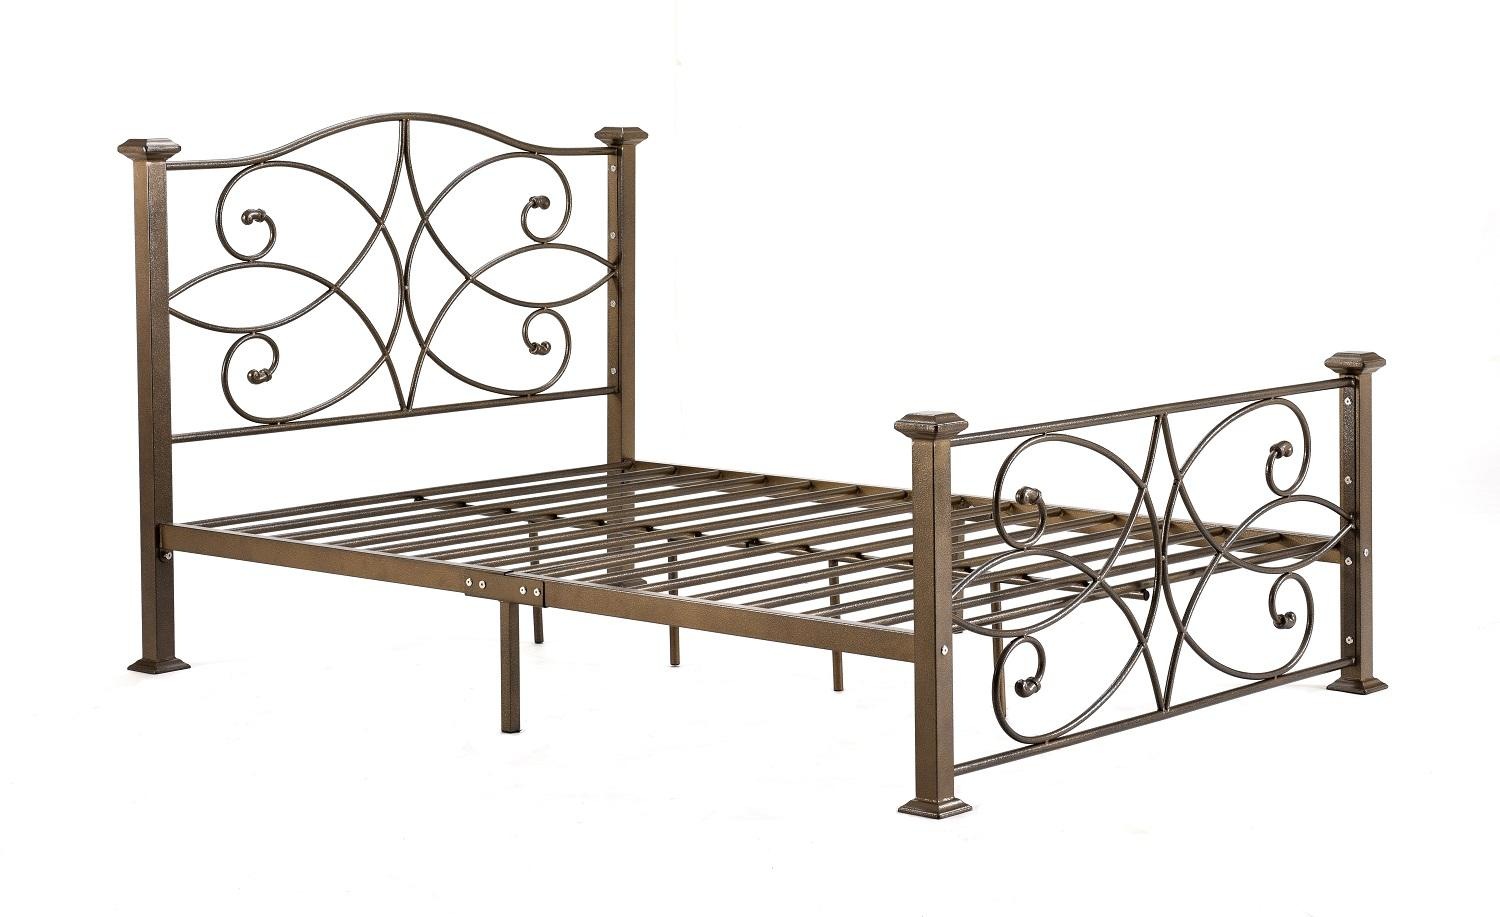 Amazon.com: Hodedah Complete Metal Full-Size Bed With